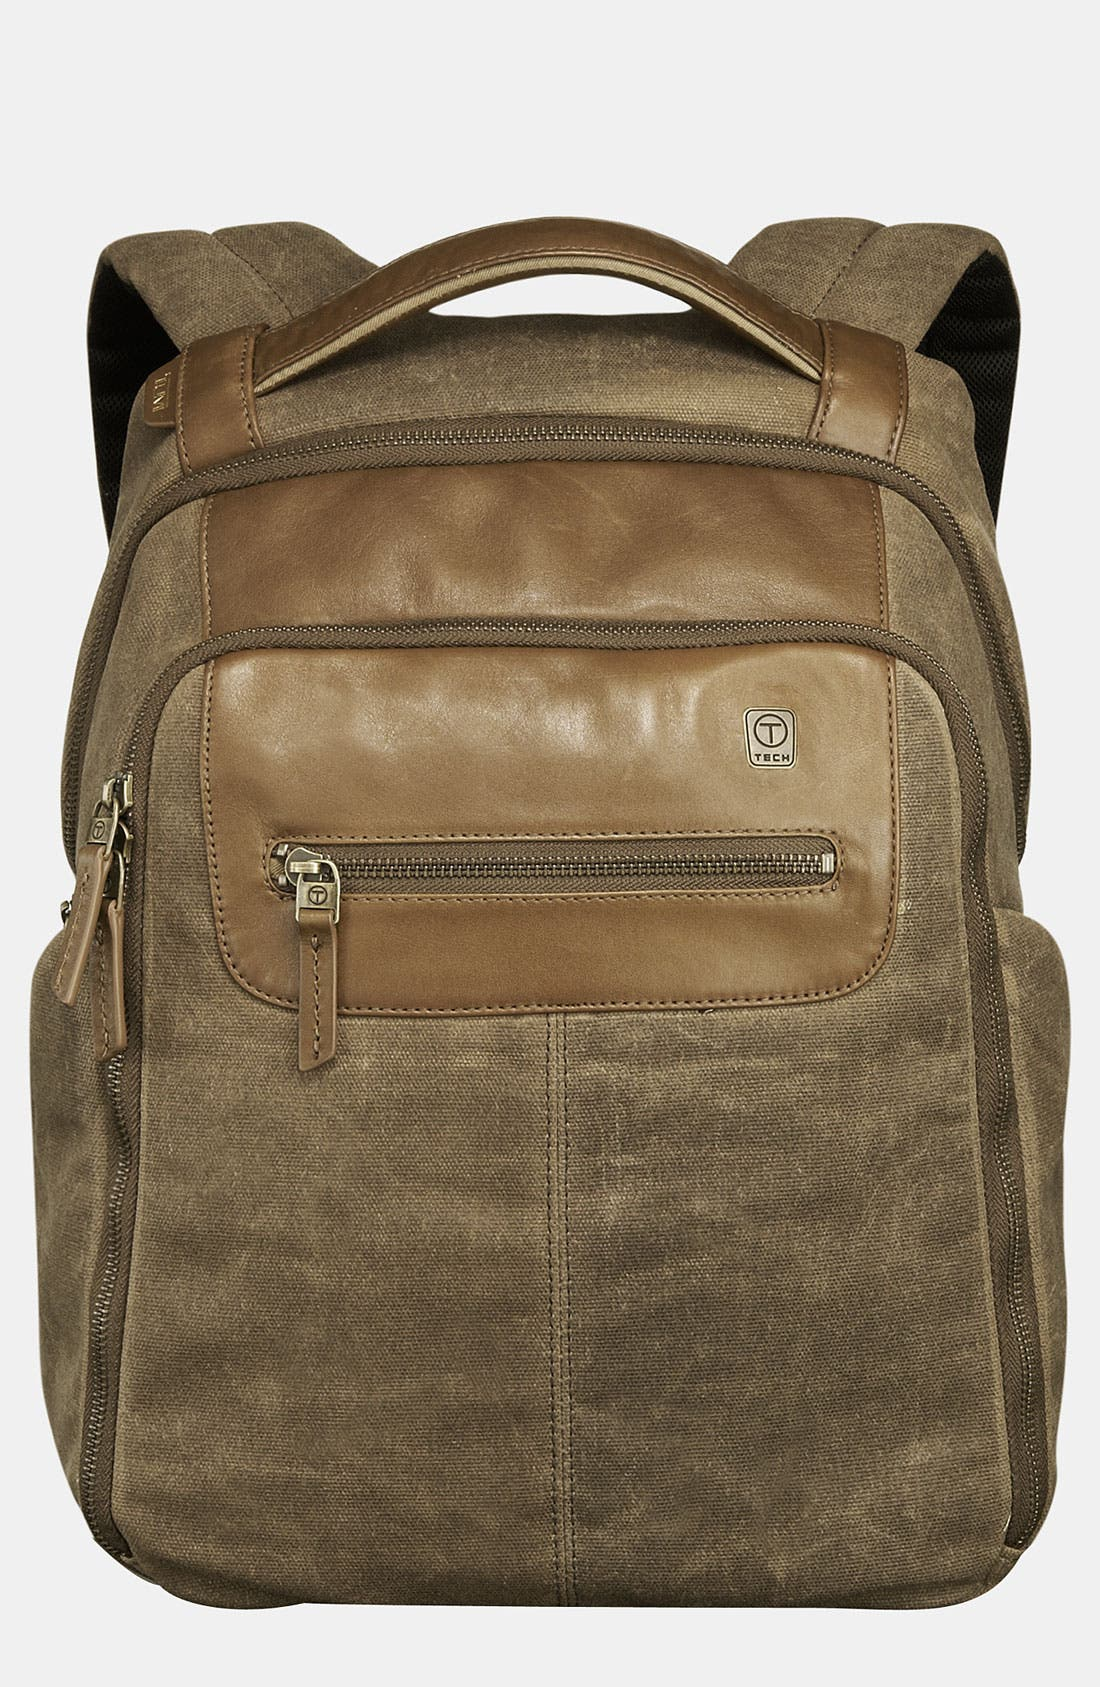 Main Image - T-Tech by Tumi 'Forge - Steel City' Slim Backpack